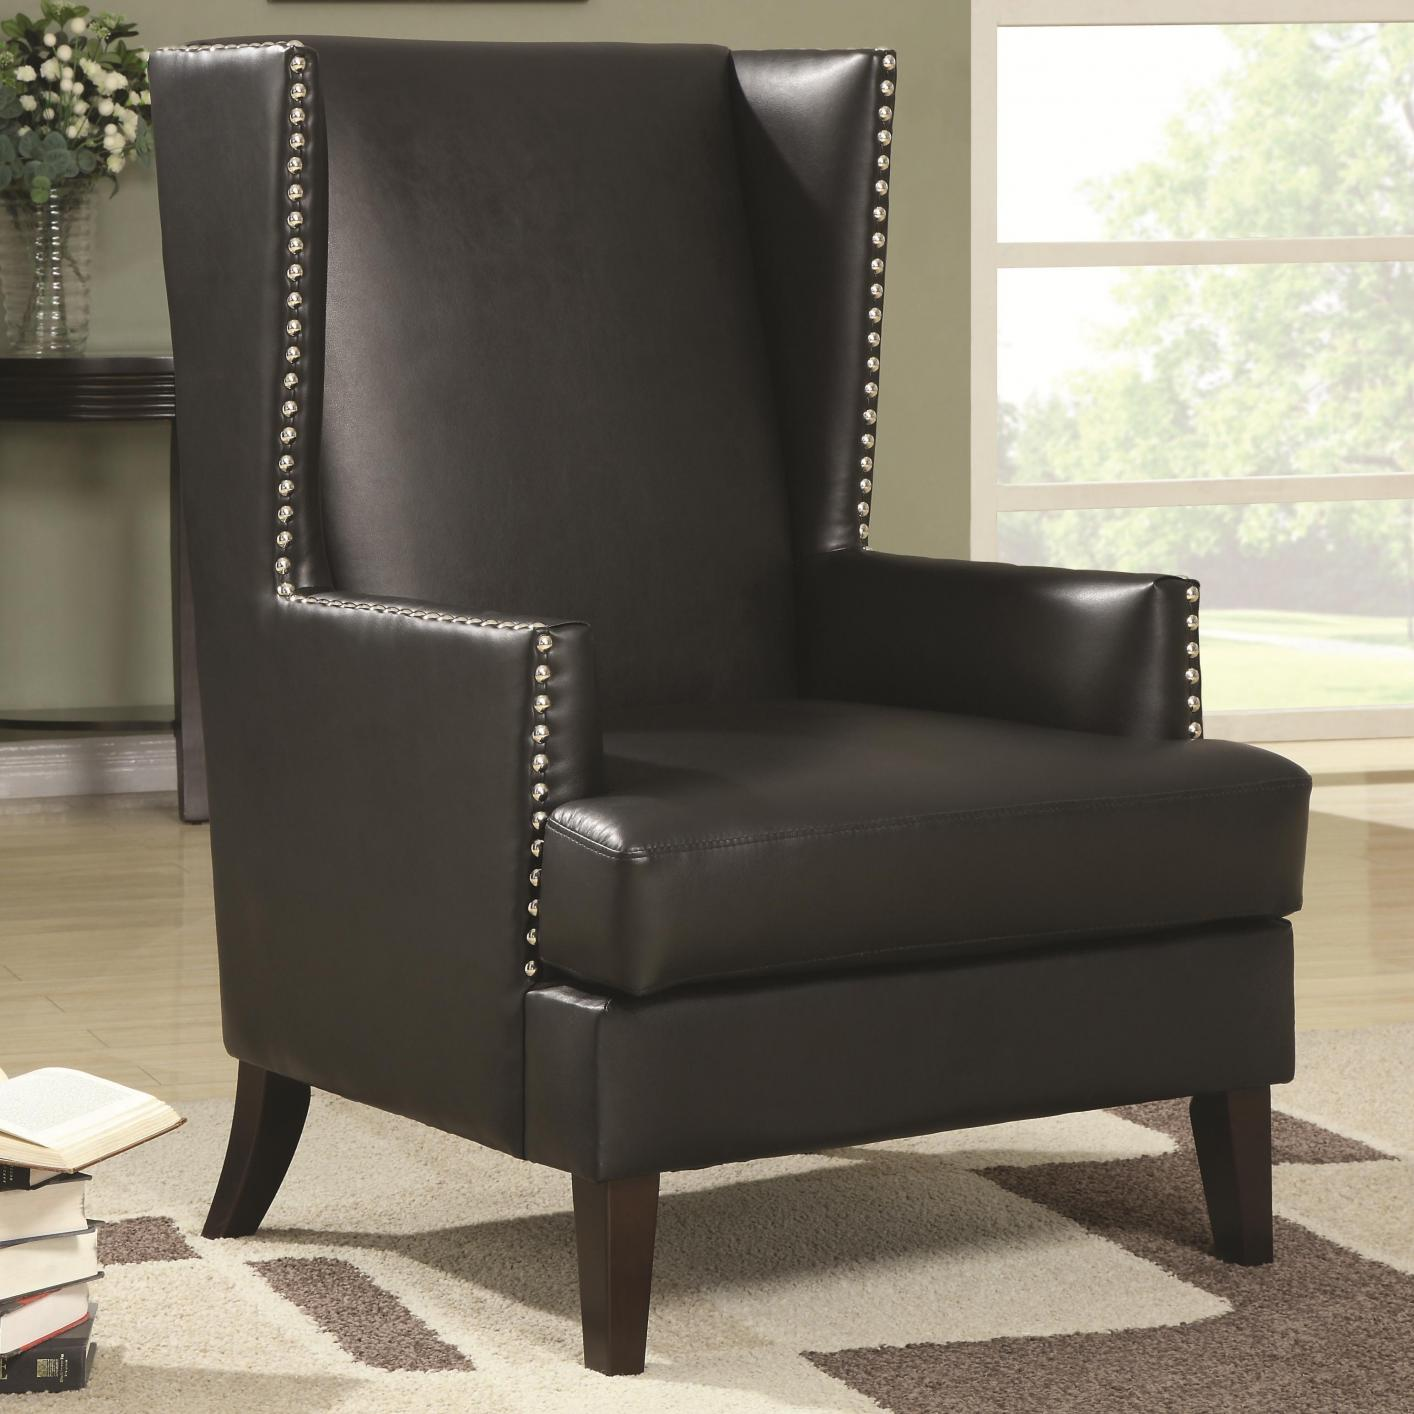 Black Leather Accent Chair - Steal-A-Sofa Furniture Outlet ...